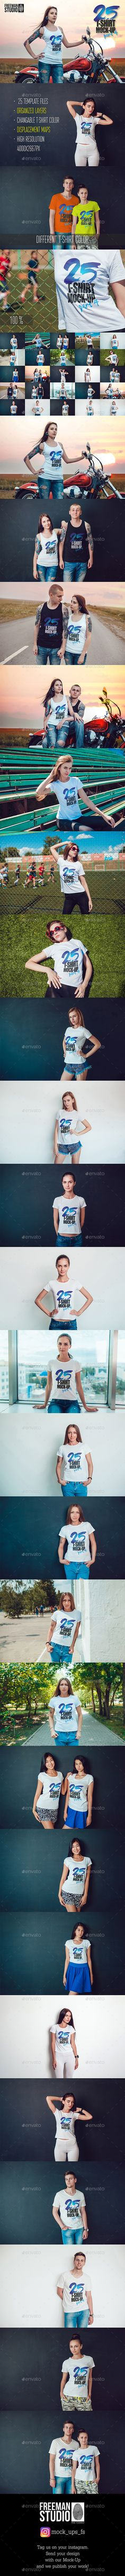 e4995eda2 26 Best T shirt mock up images | Mockup photoshop, Product mockup, T ...